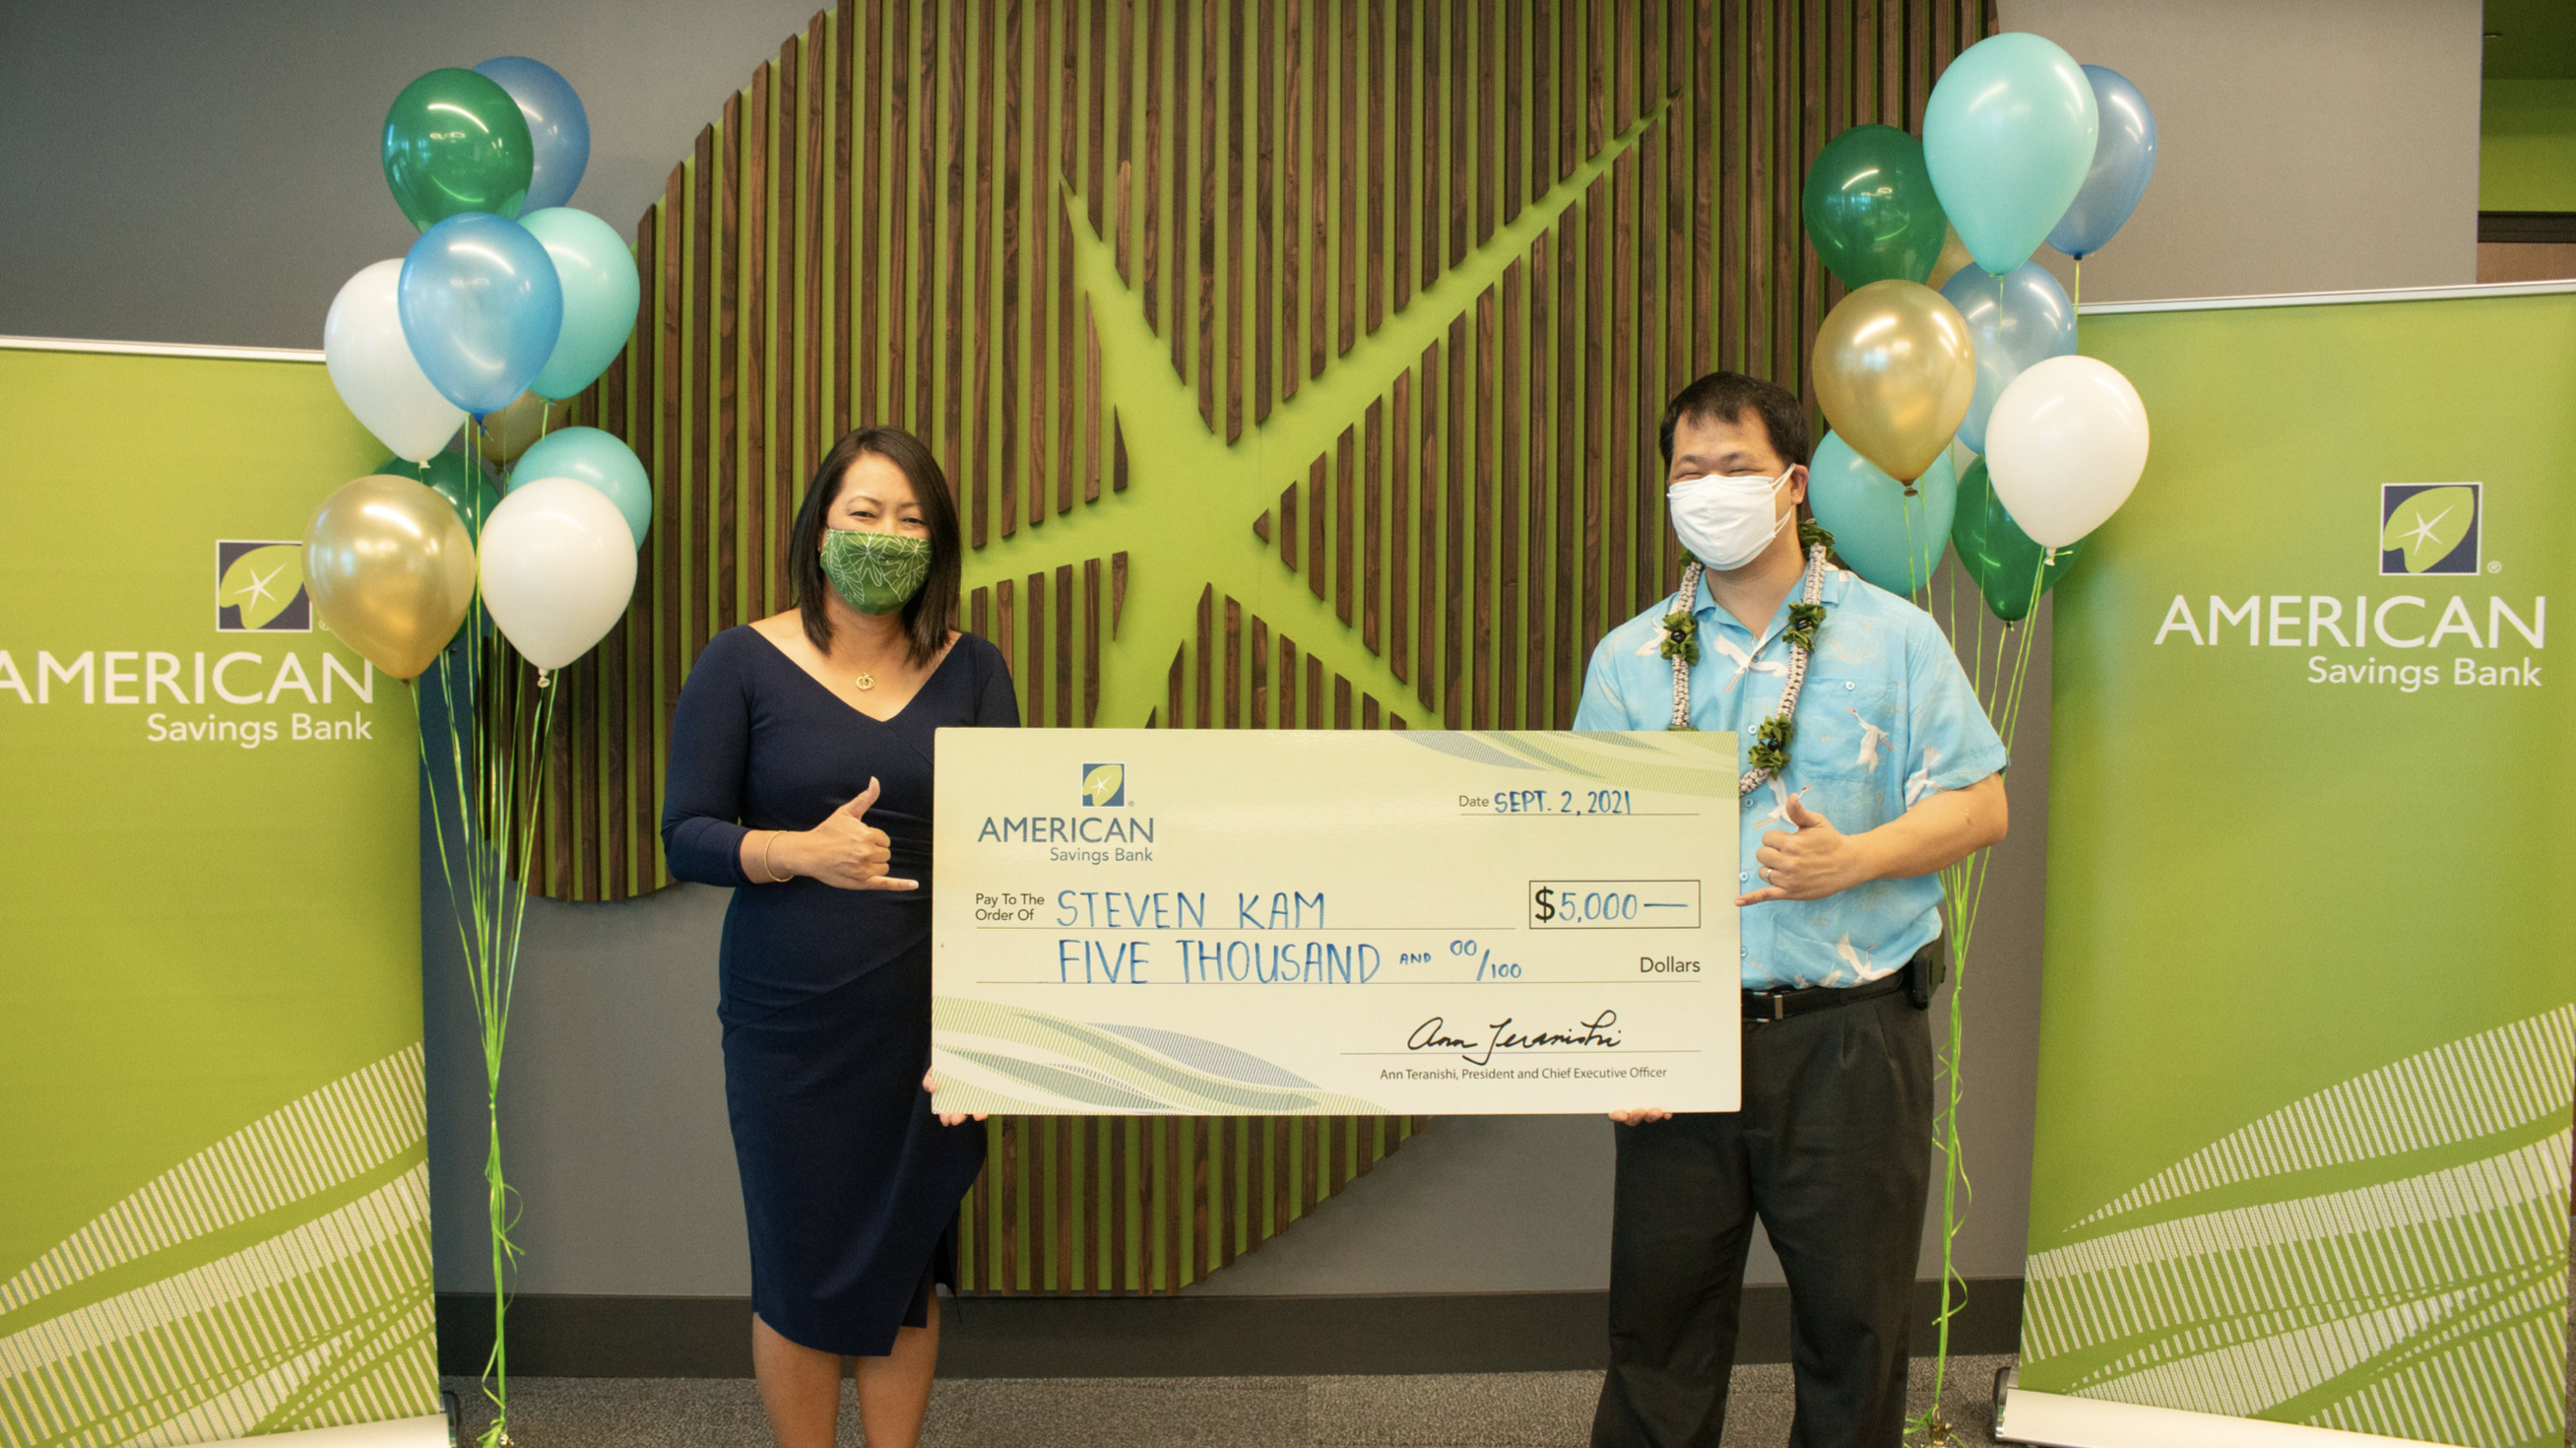 #HIGotVaccinated Entrant Wins $5,000 From American Savings Bank